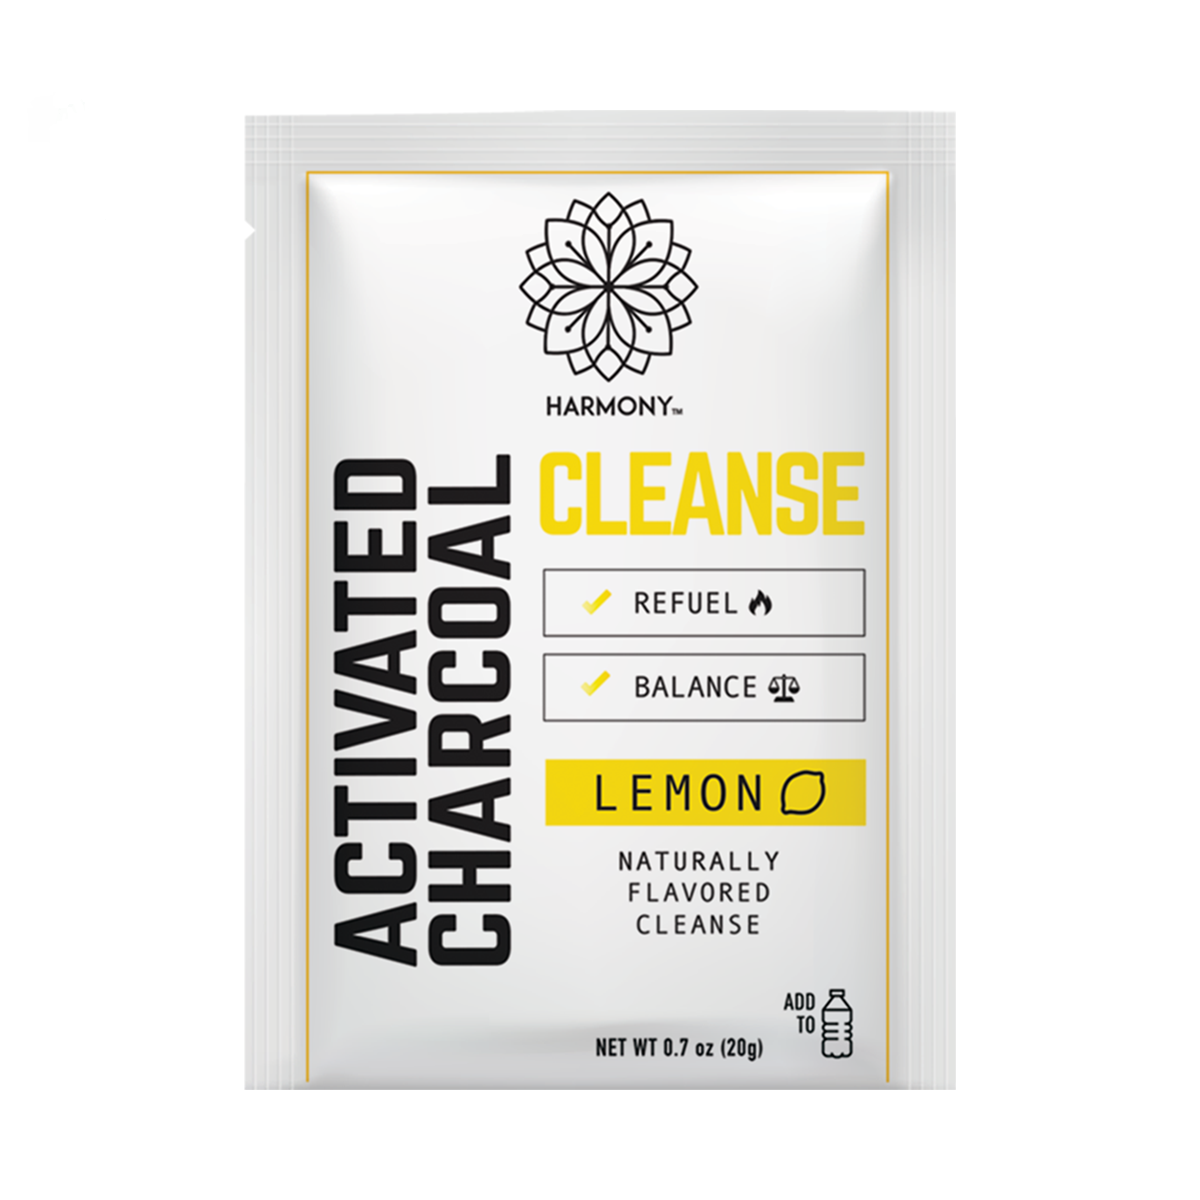 Activated Charcoal Lemon Detox Mix